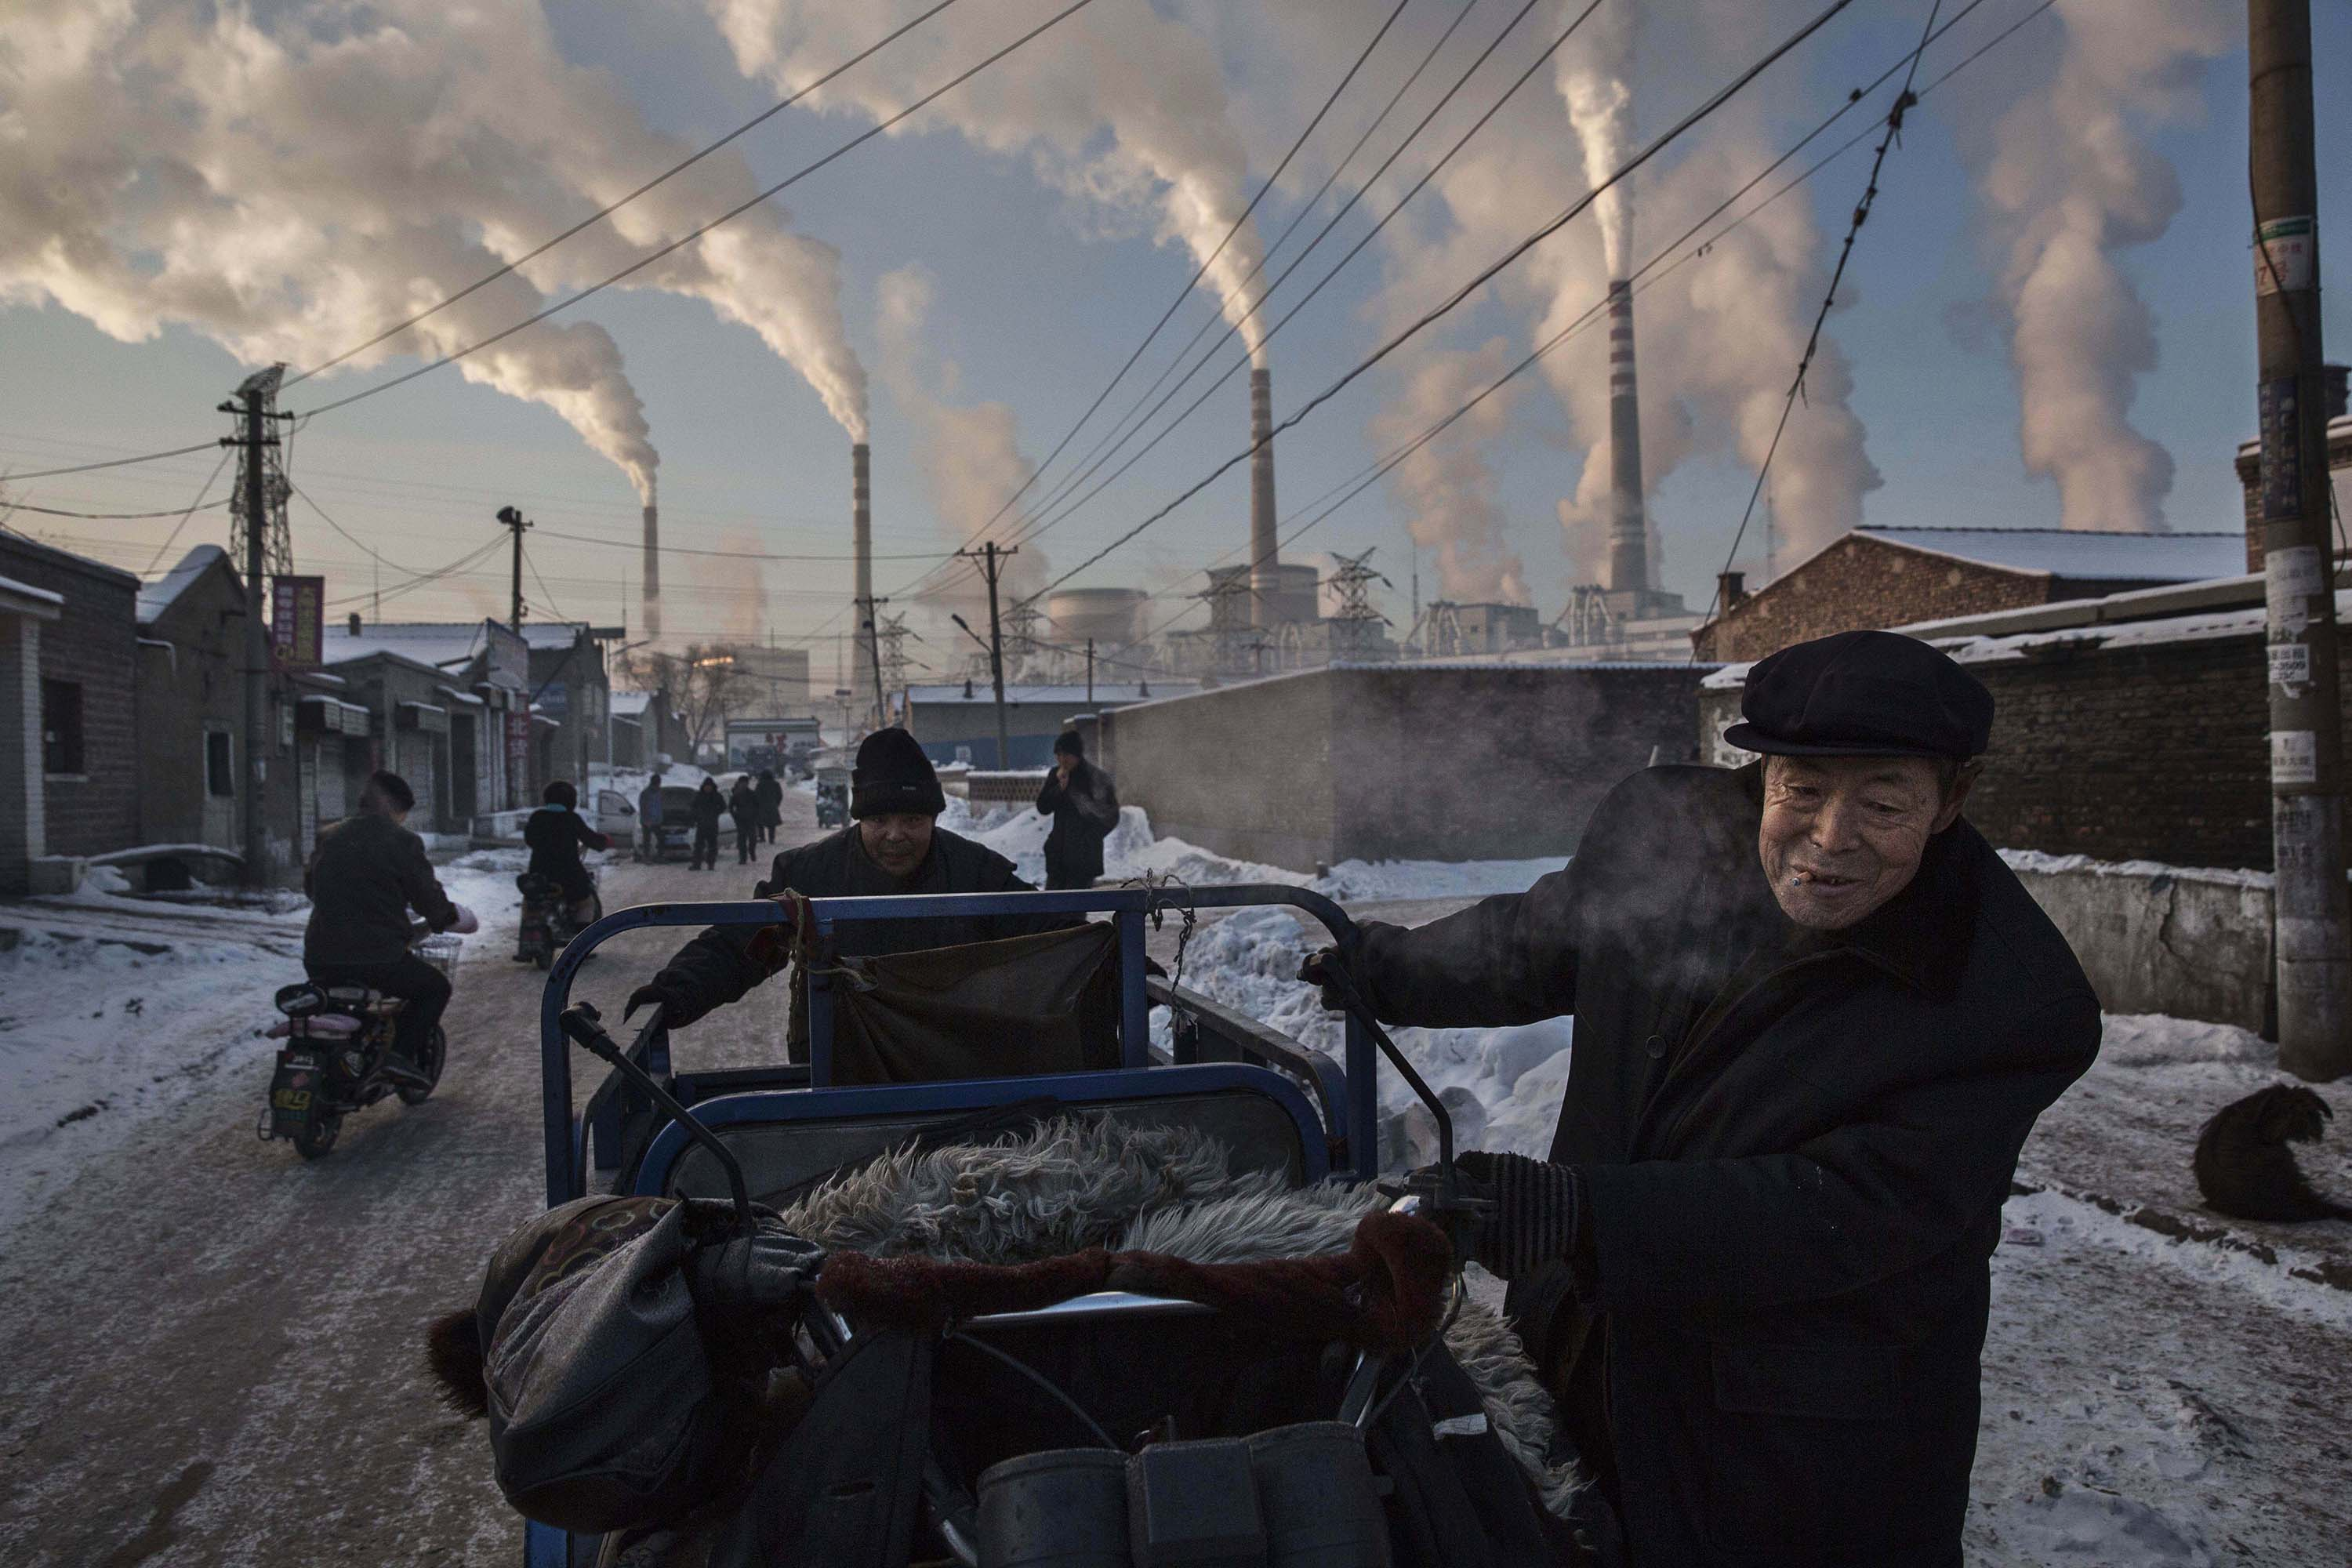 World Press Photo, China Coal